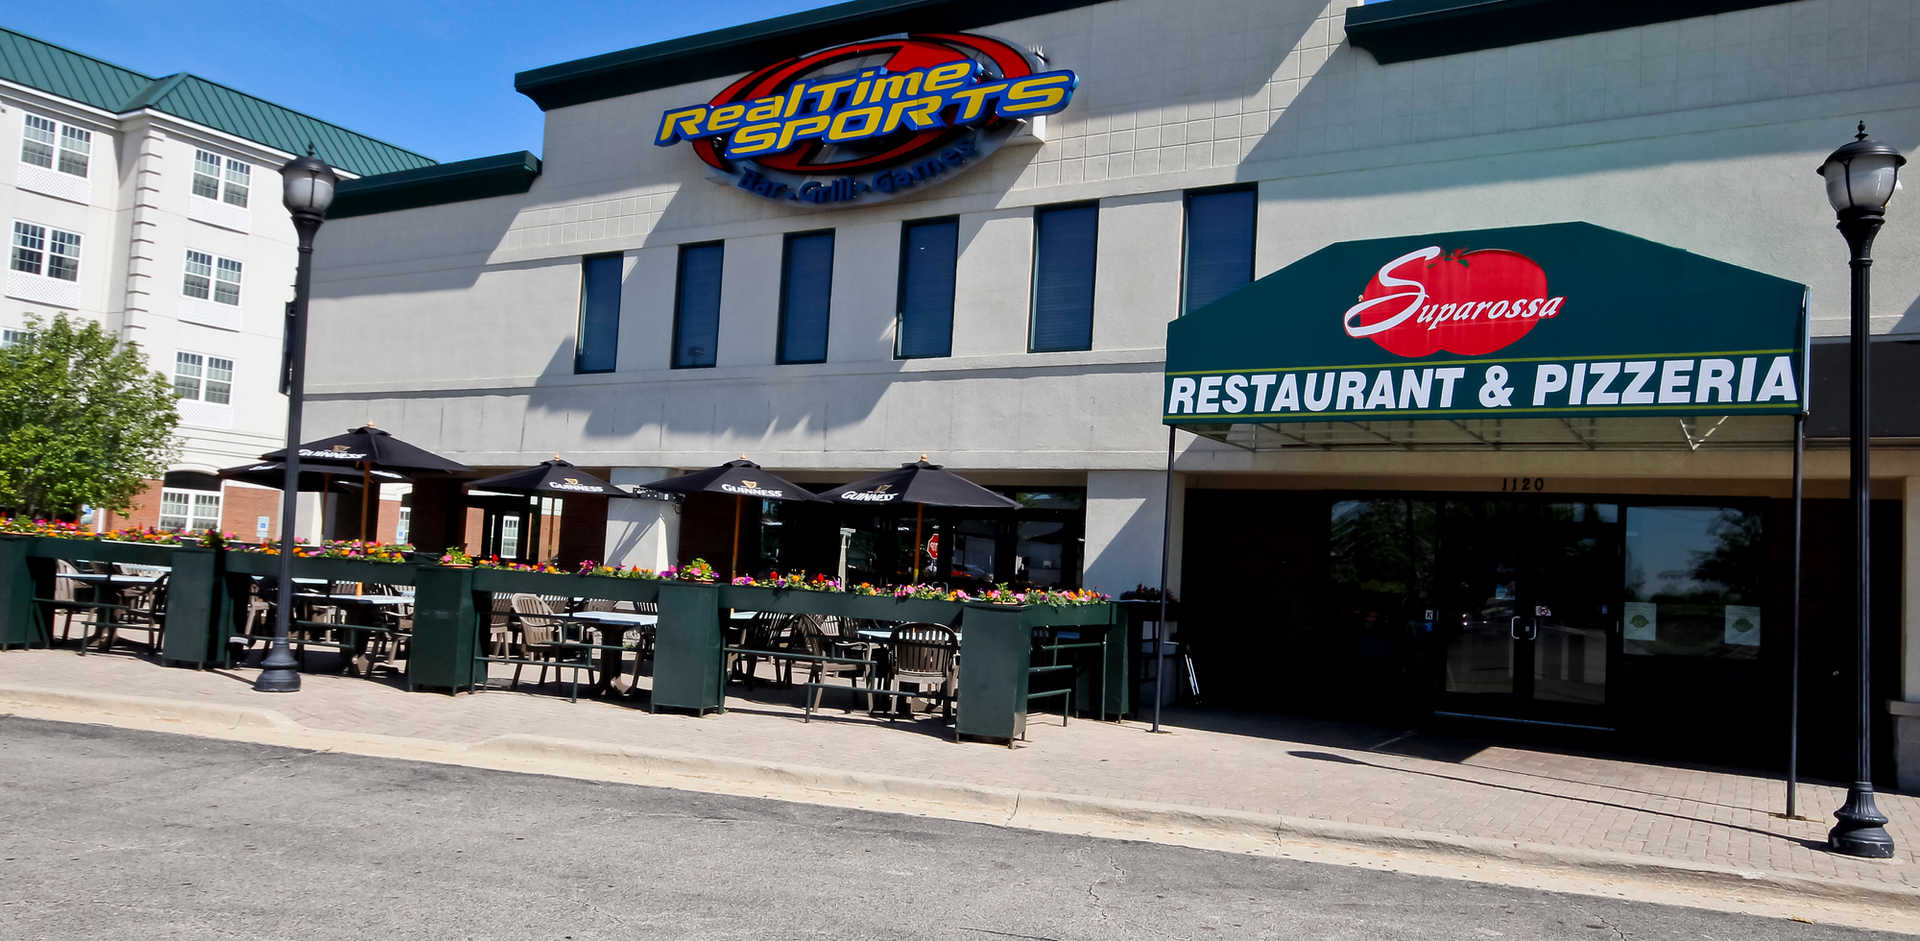 Real Time Sports Bar and Grill Entrance